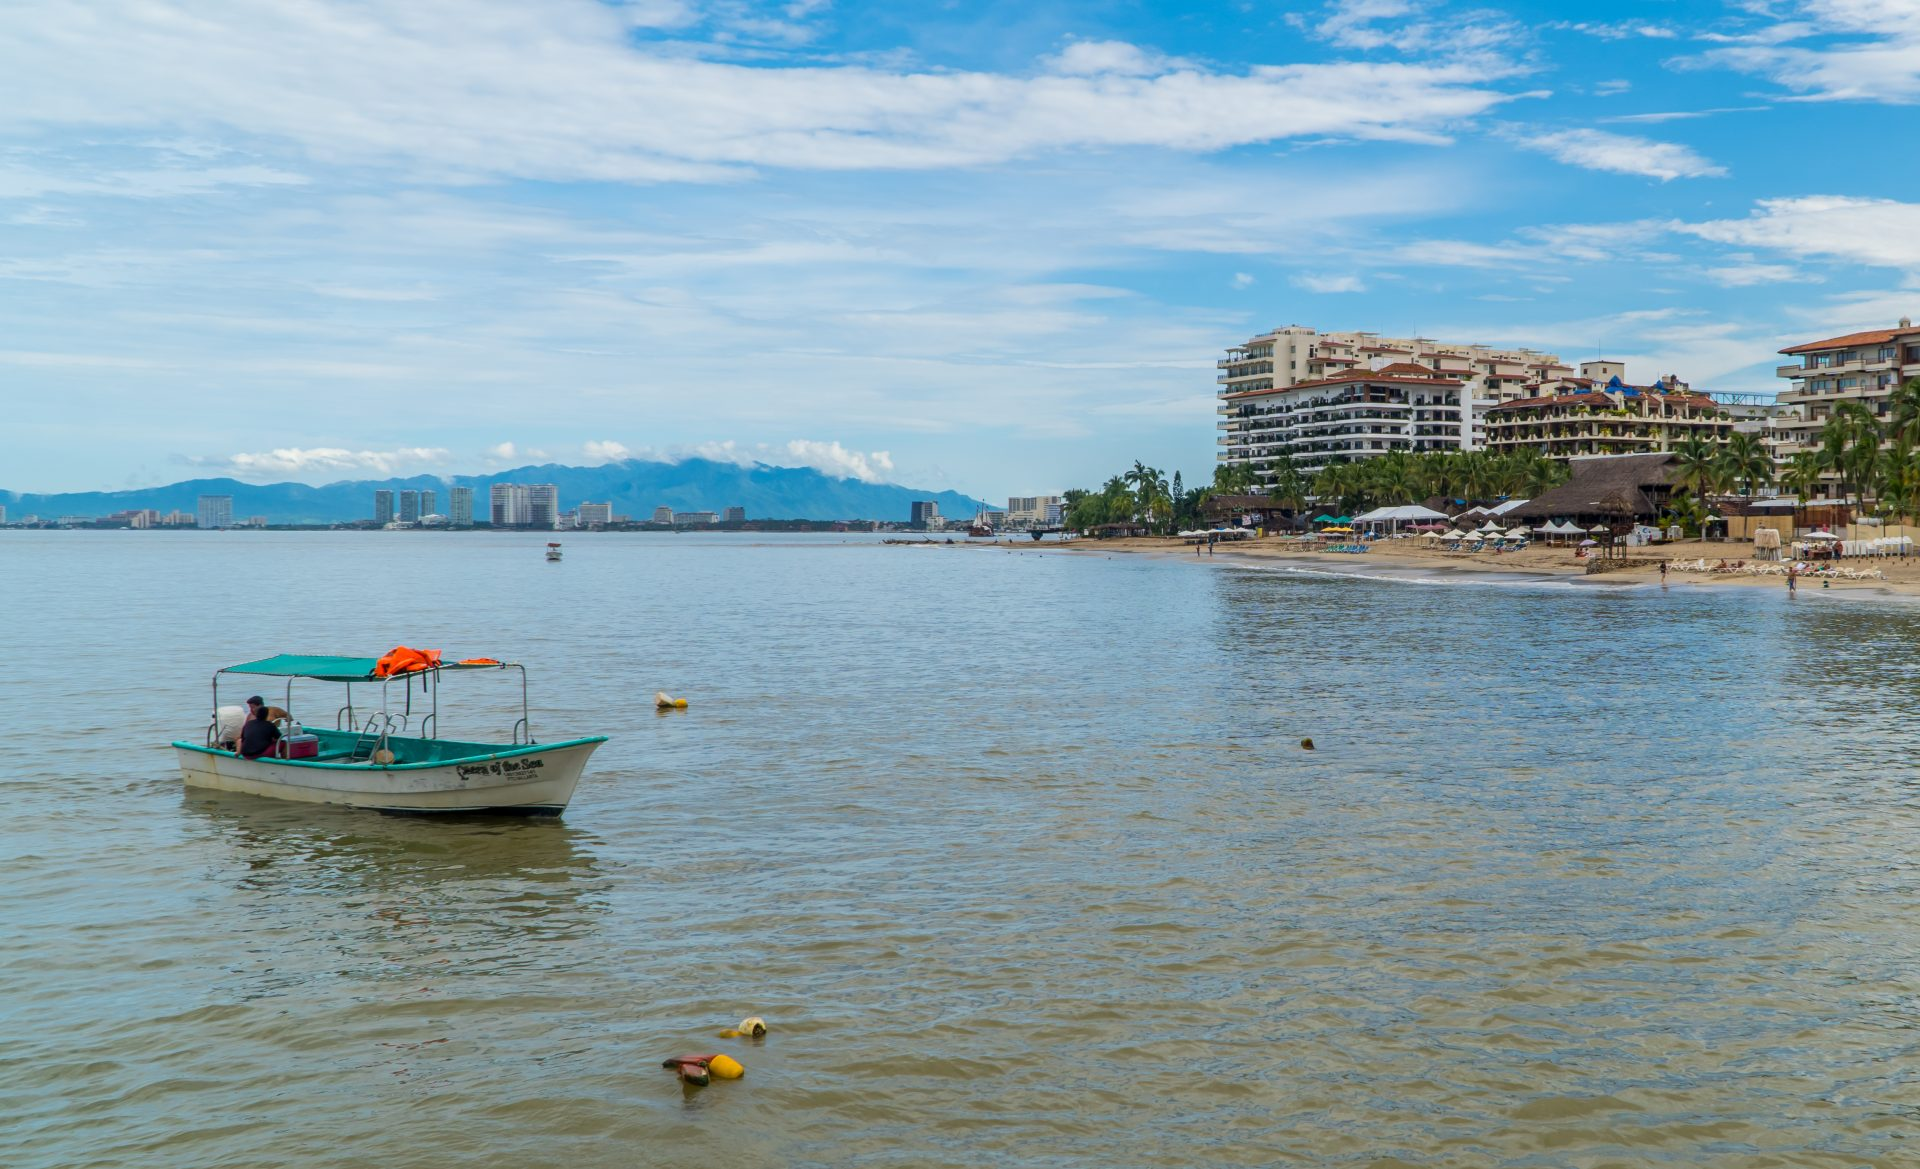 Puerto Vallarta Digital Nomad Guide - boat and beach in the Romantic Zone